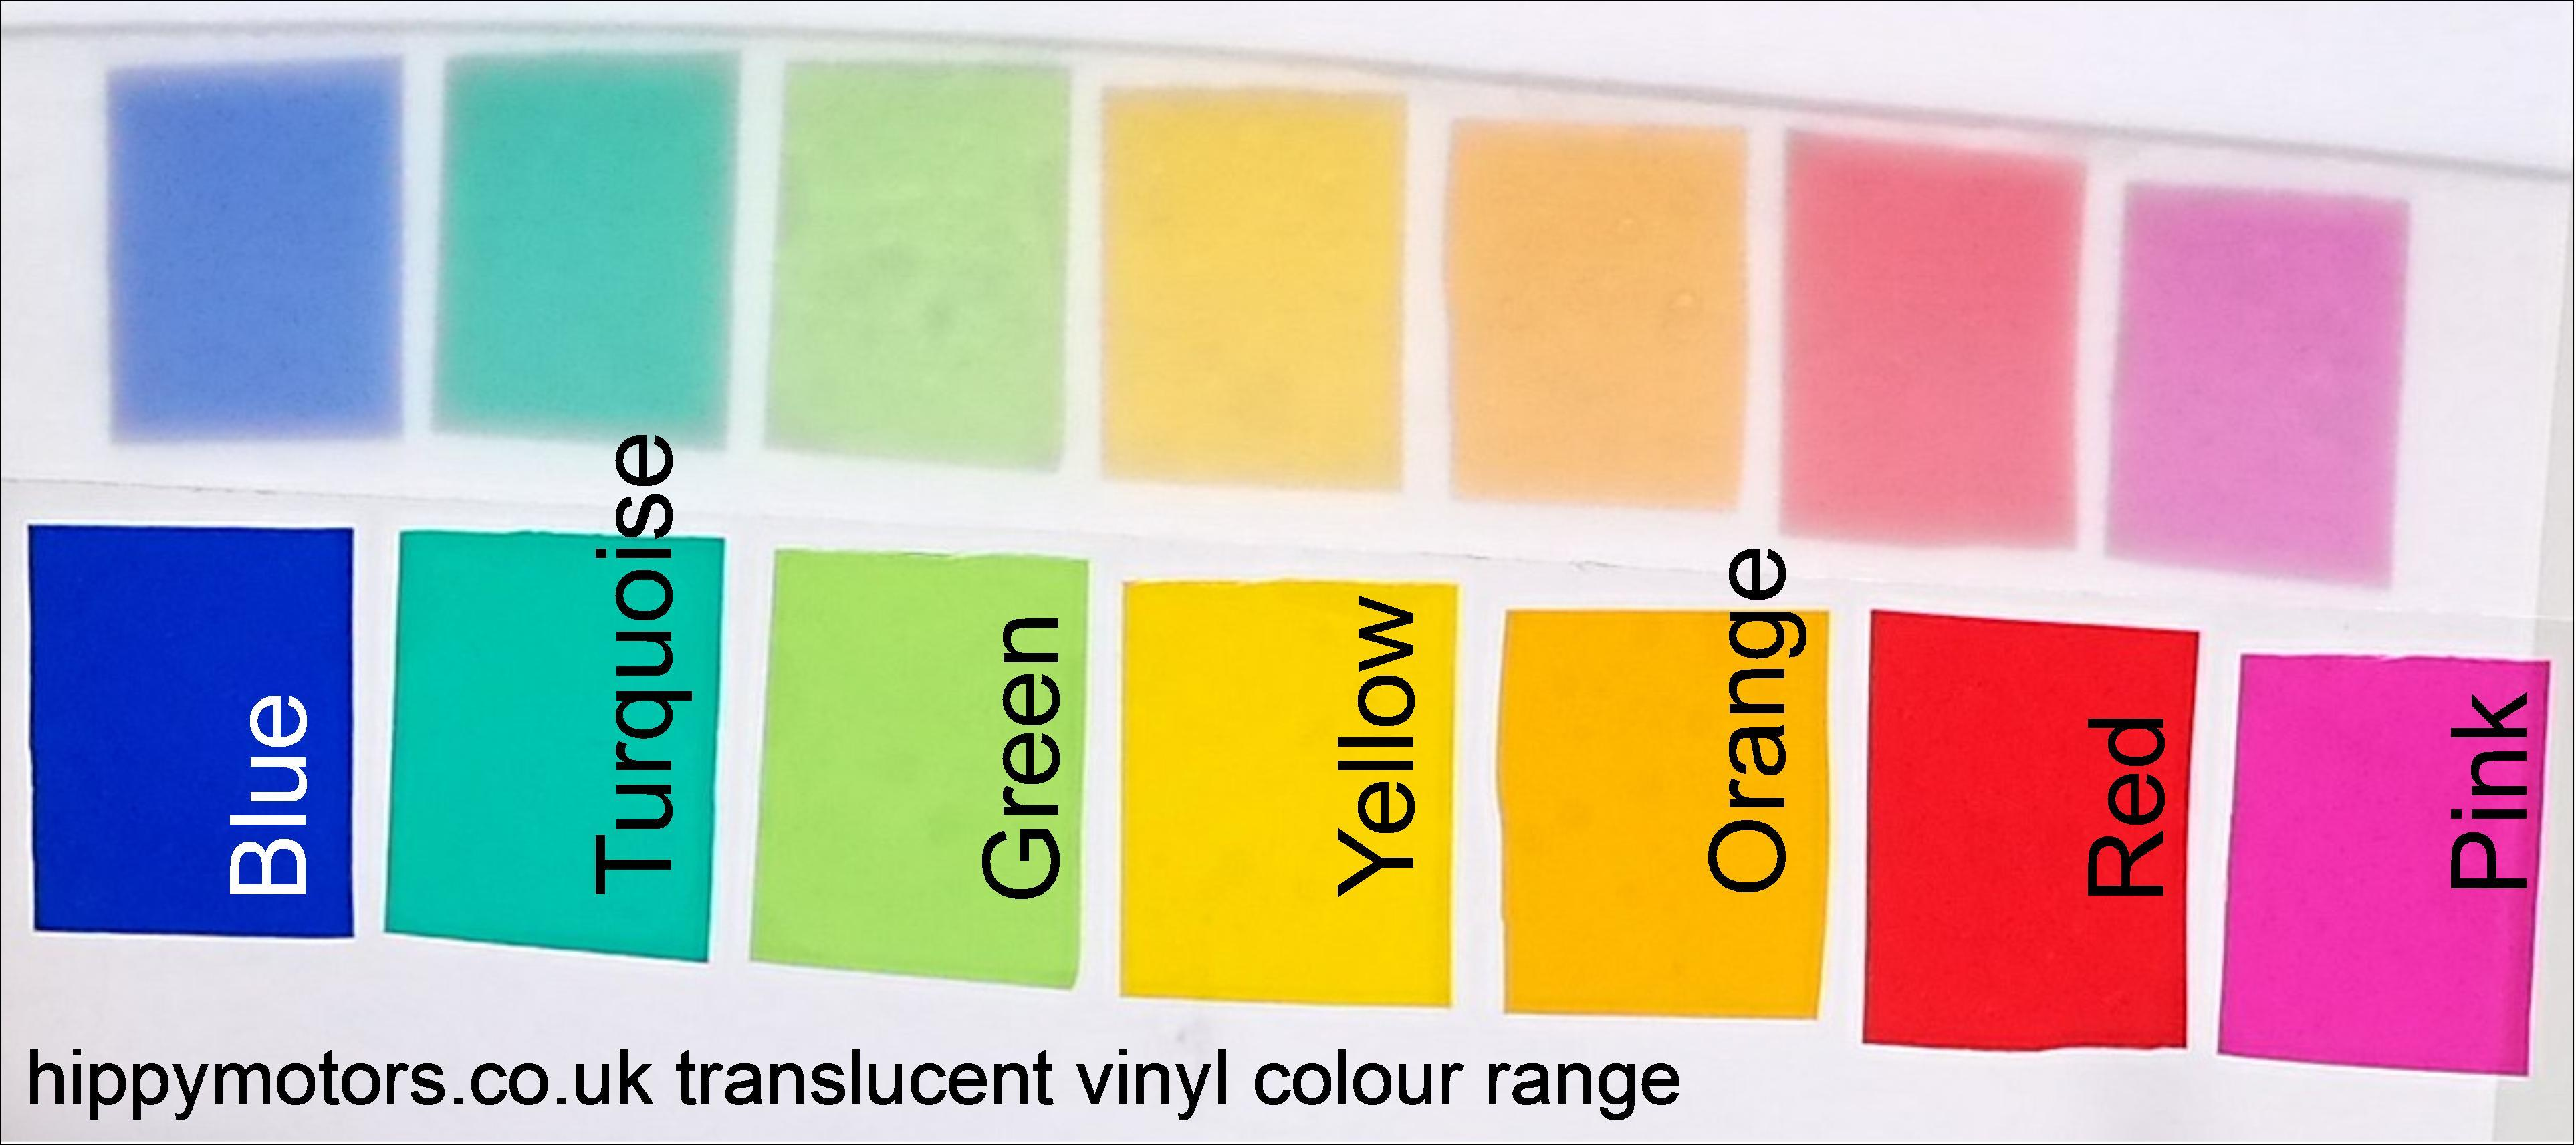 hippymotors-translucent-vinyl-colour-chart.jpg